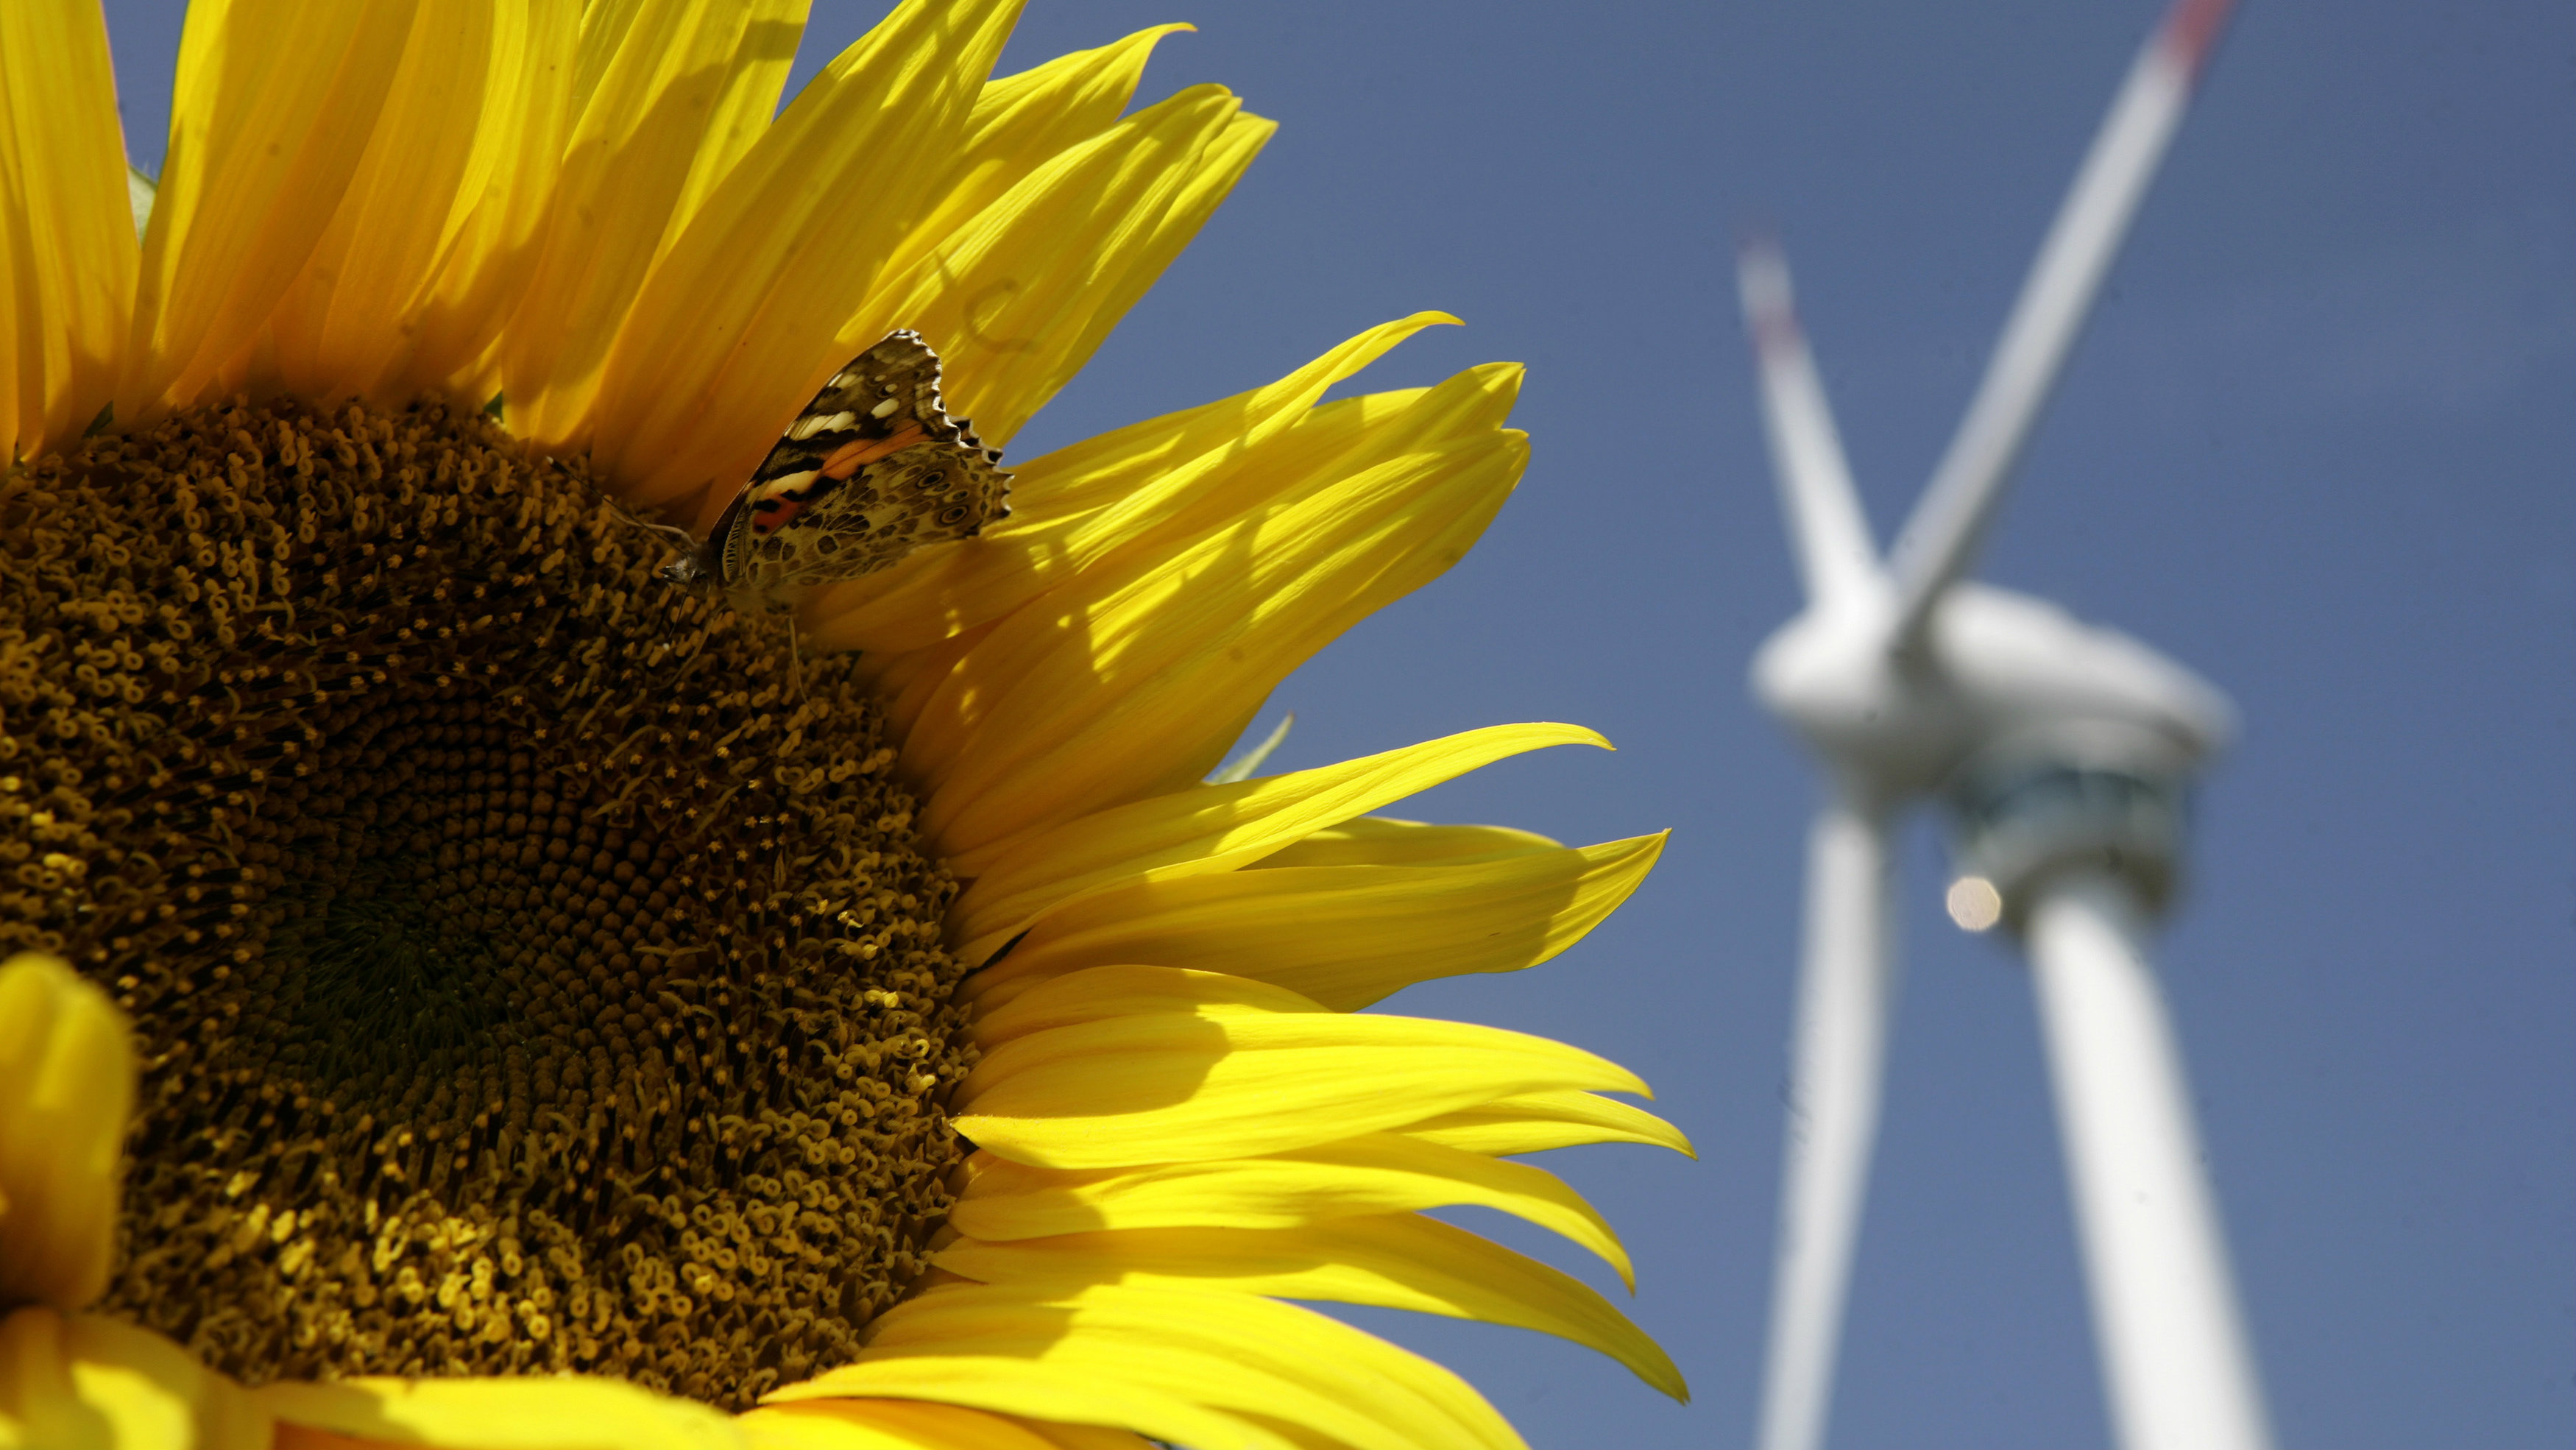 A butterfly sits on a sunflower in front of a wind generator in Bruck and der Leitha, some 40km (some 25 miles) east of Vienna September 23, 2009. REUTERS/Herwig Prammer (AUSTRIA ENERGY ENVIRONMENT)